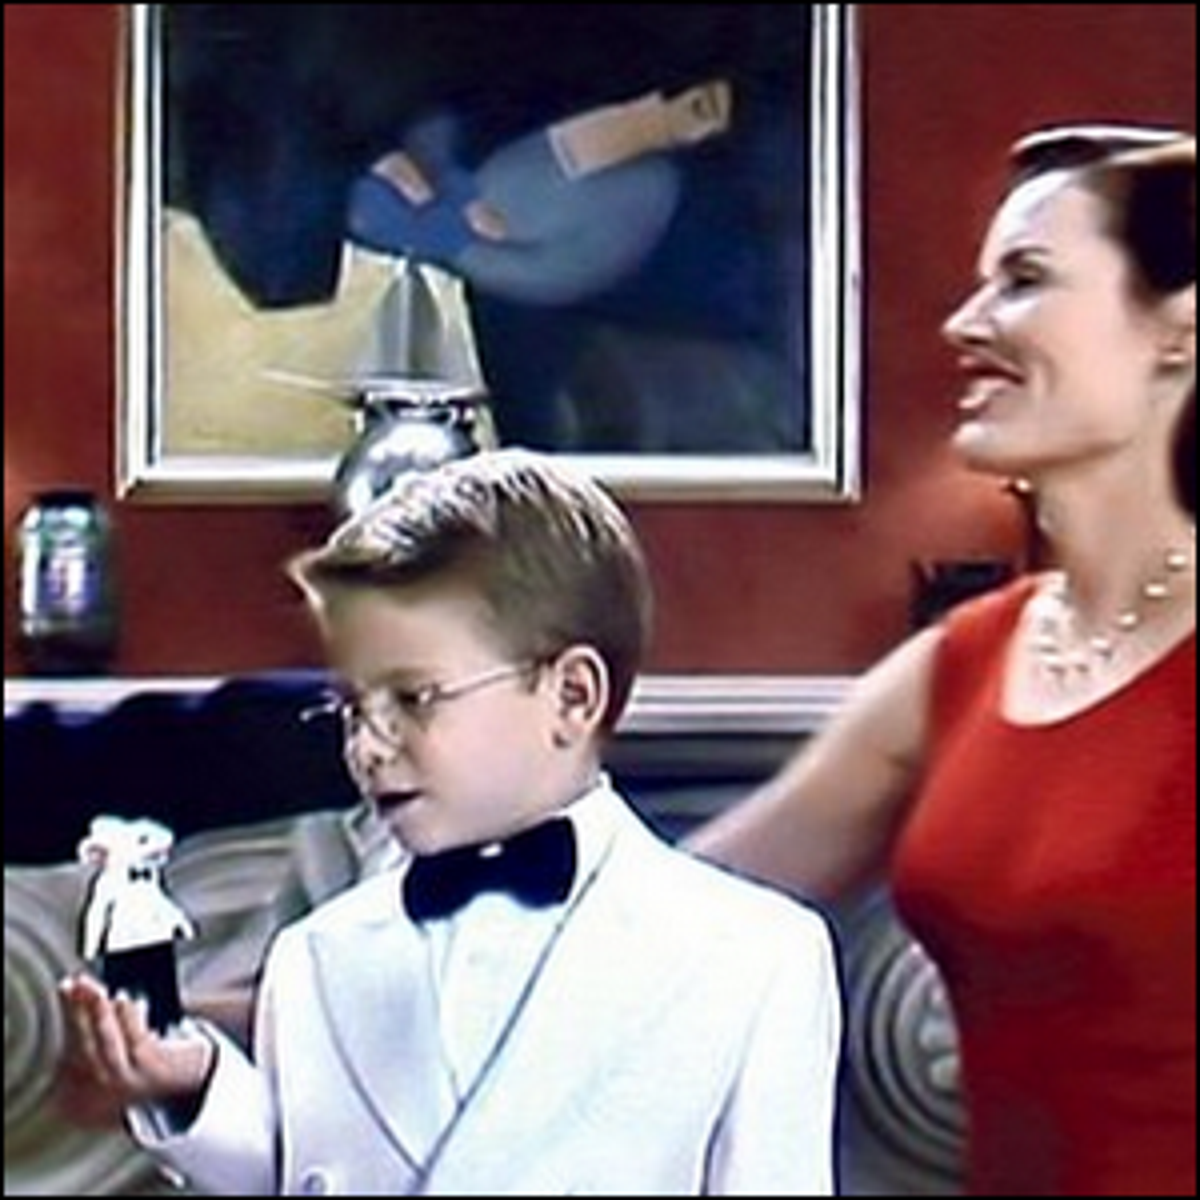 A scene from Stuart Little with the painting visible in the background.